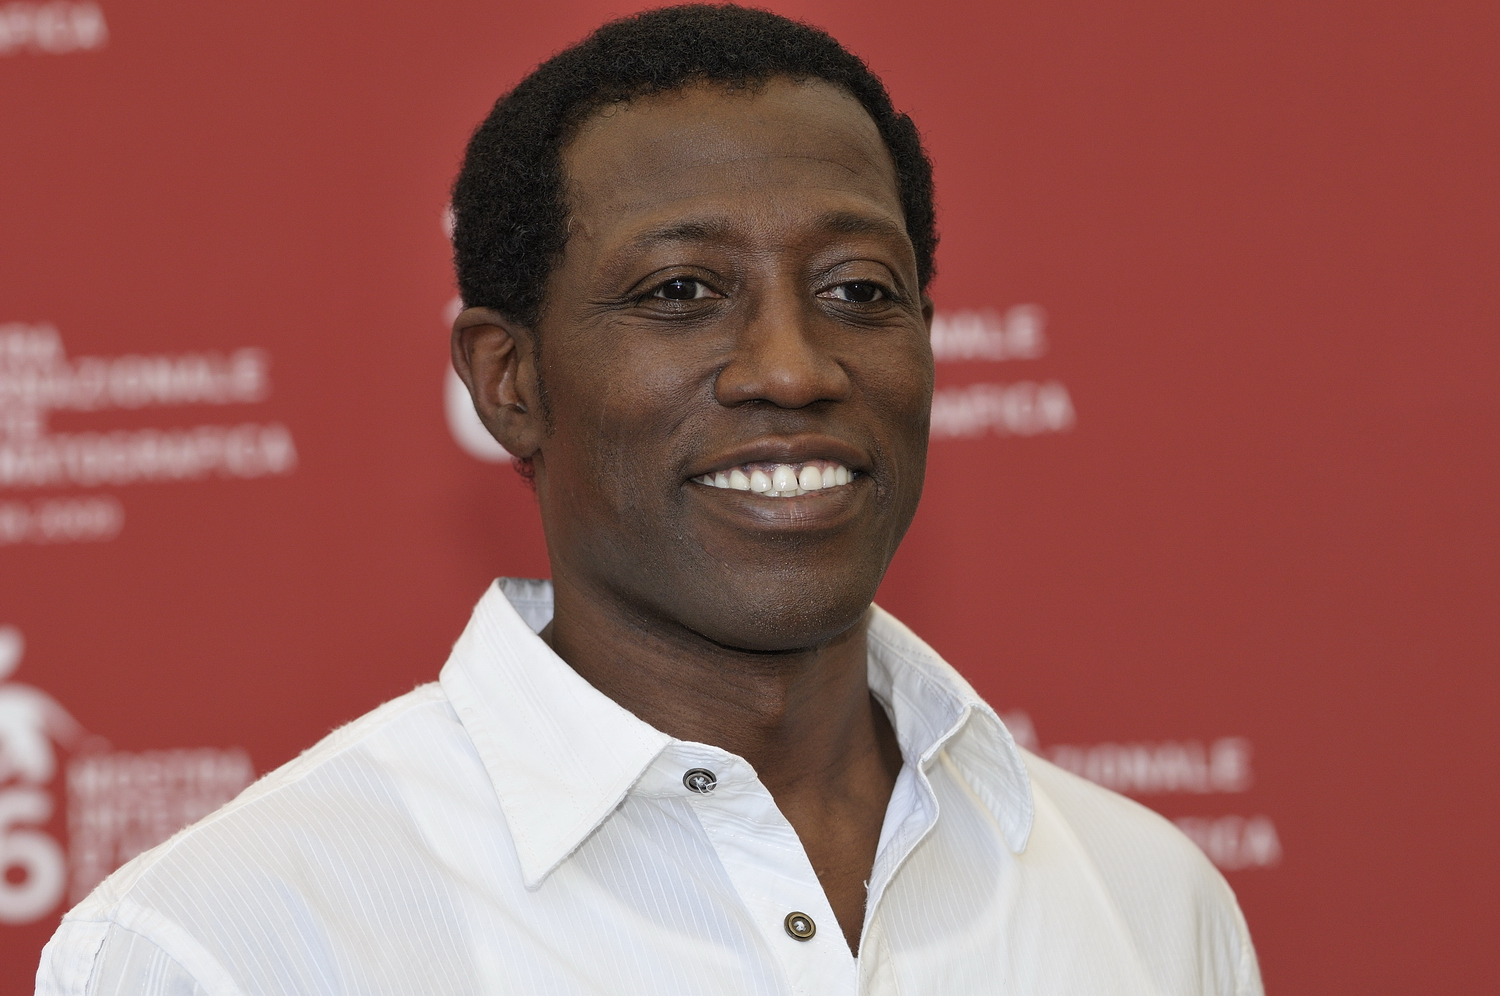 Wesley Snipes a gagné  un salaire d'un million de dollar, laissant fortune 10 million en date de 2017